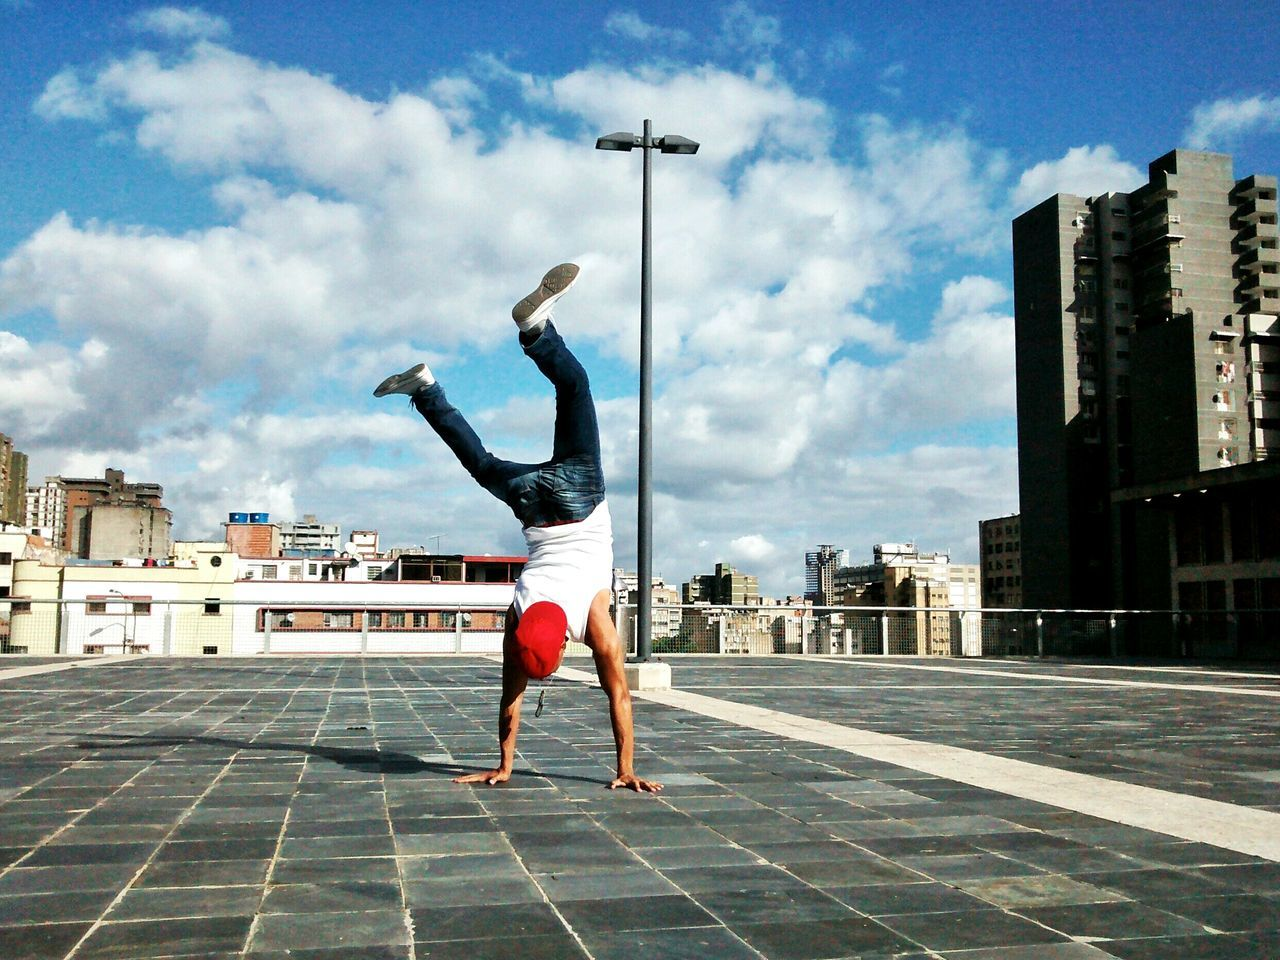 The City Light one person City outdoors performance Cityscape sky motion full length EyeEm Best Shots Breakdancing Hip Hop EyeEm gallery eyeemphotography VSCO Venezuela Capture The Moment Fresh on Market 2017